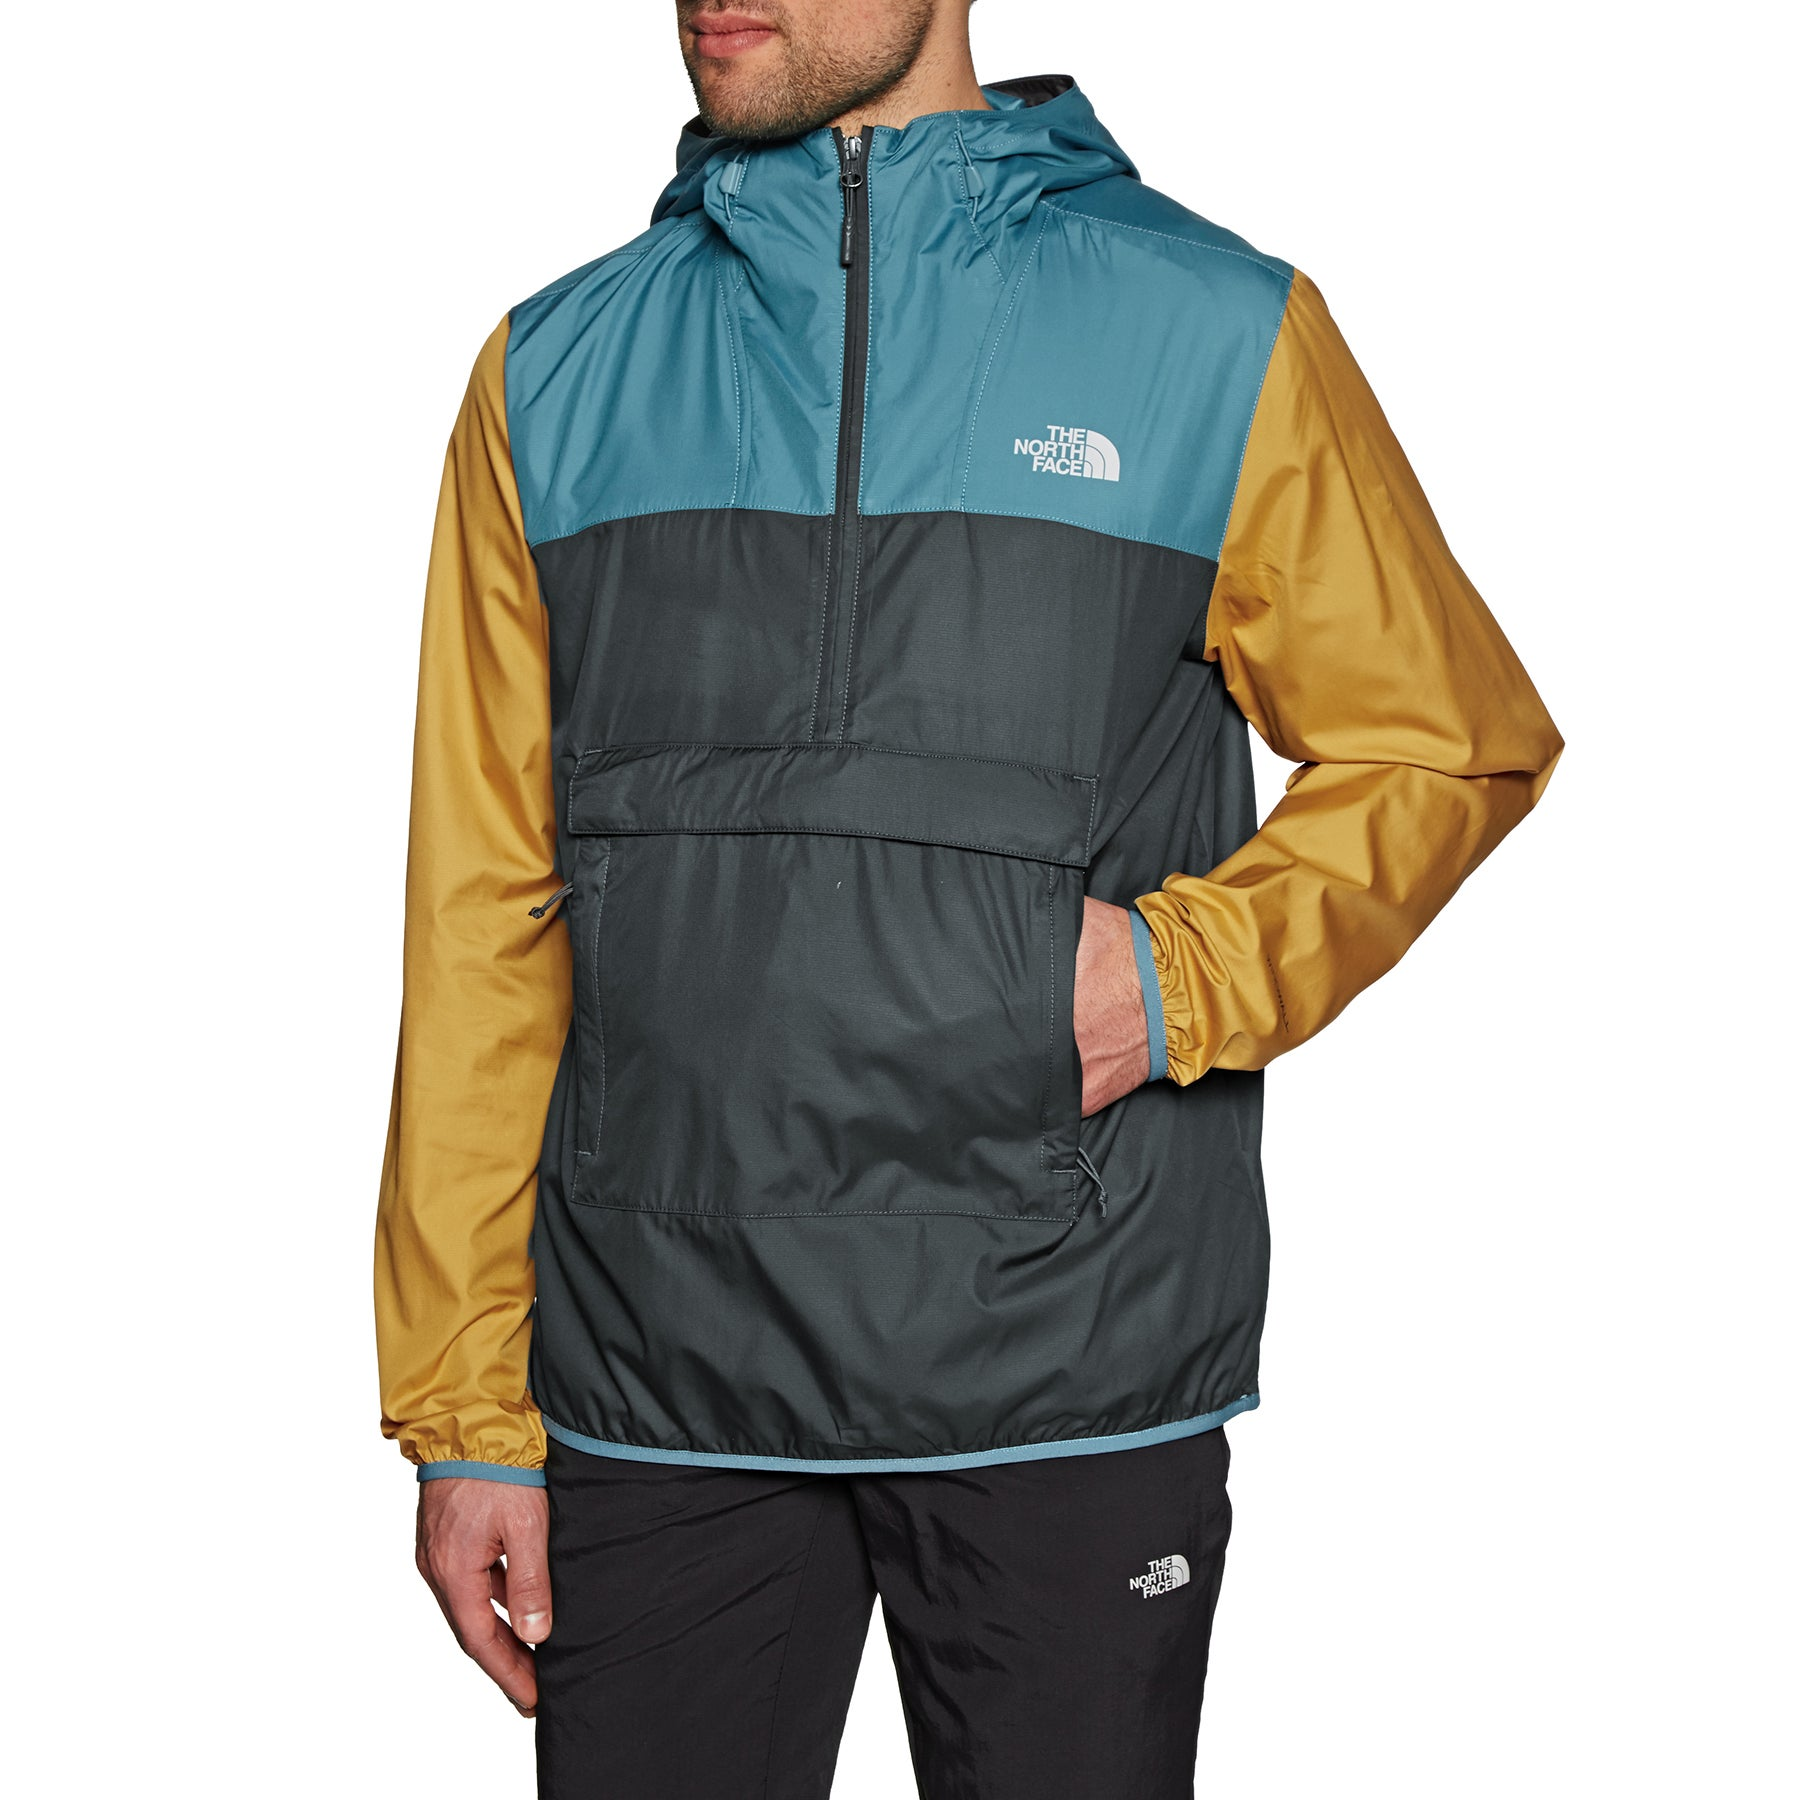 Chaqueta a prueba de viento North Face Fanorak - Grey Storm Blue Yellow